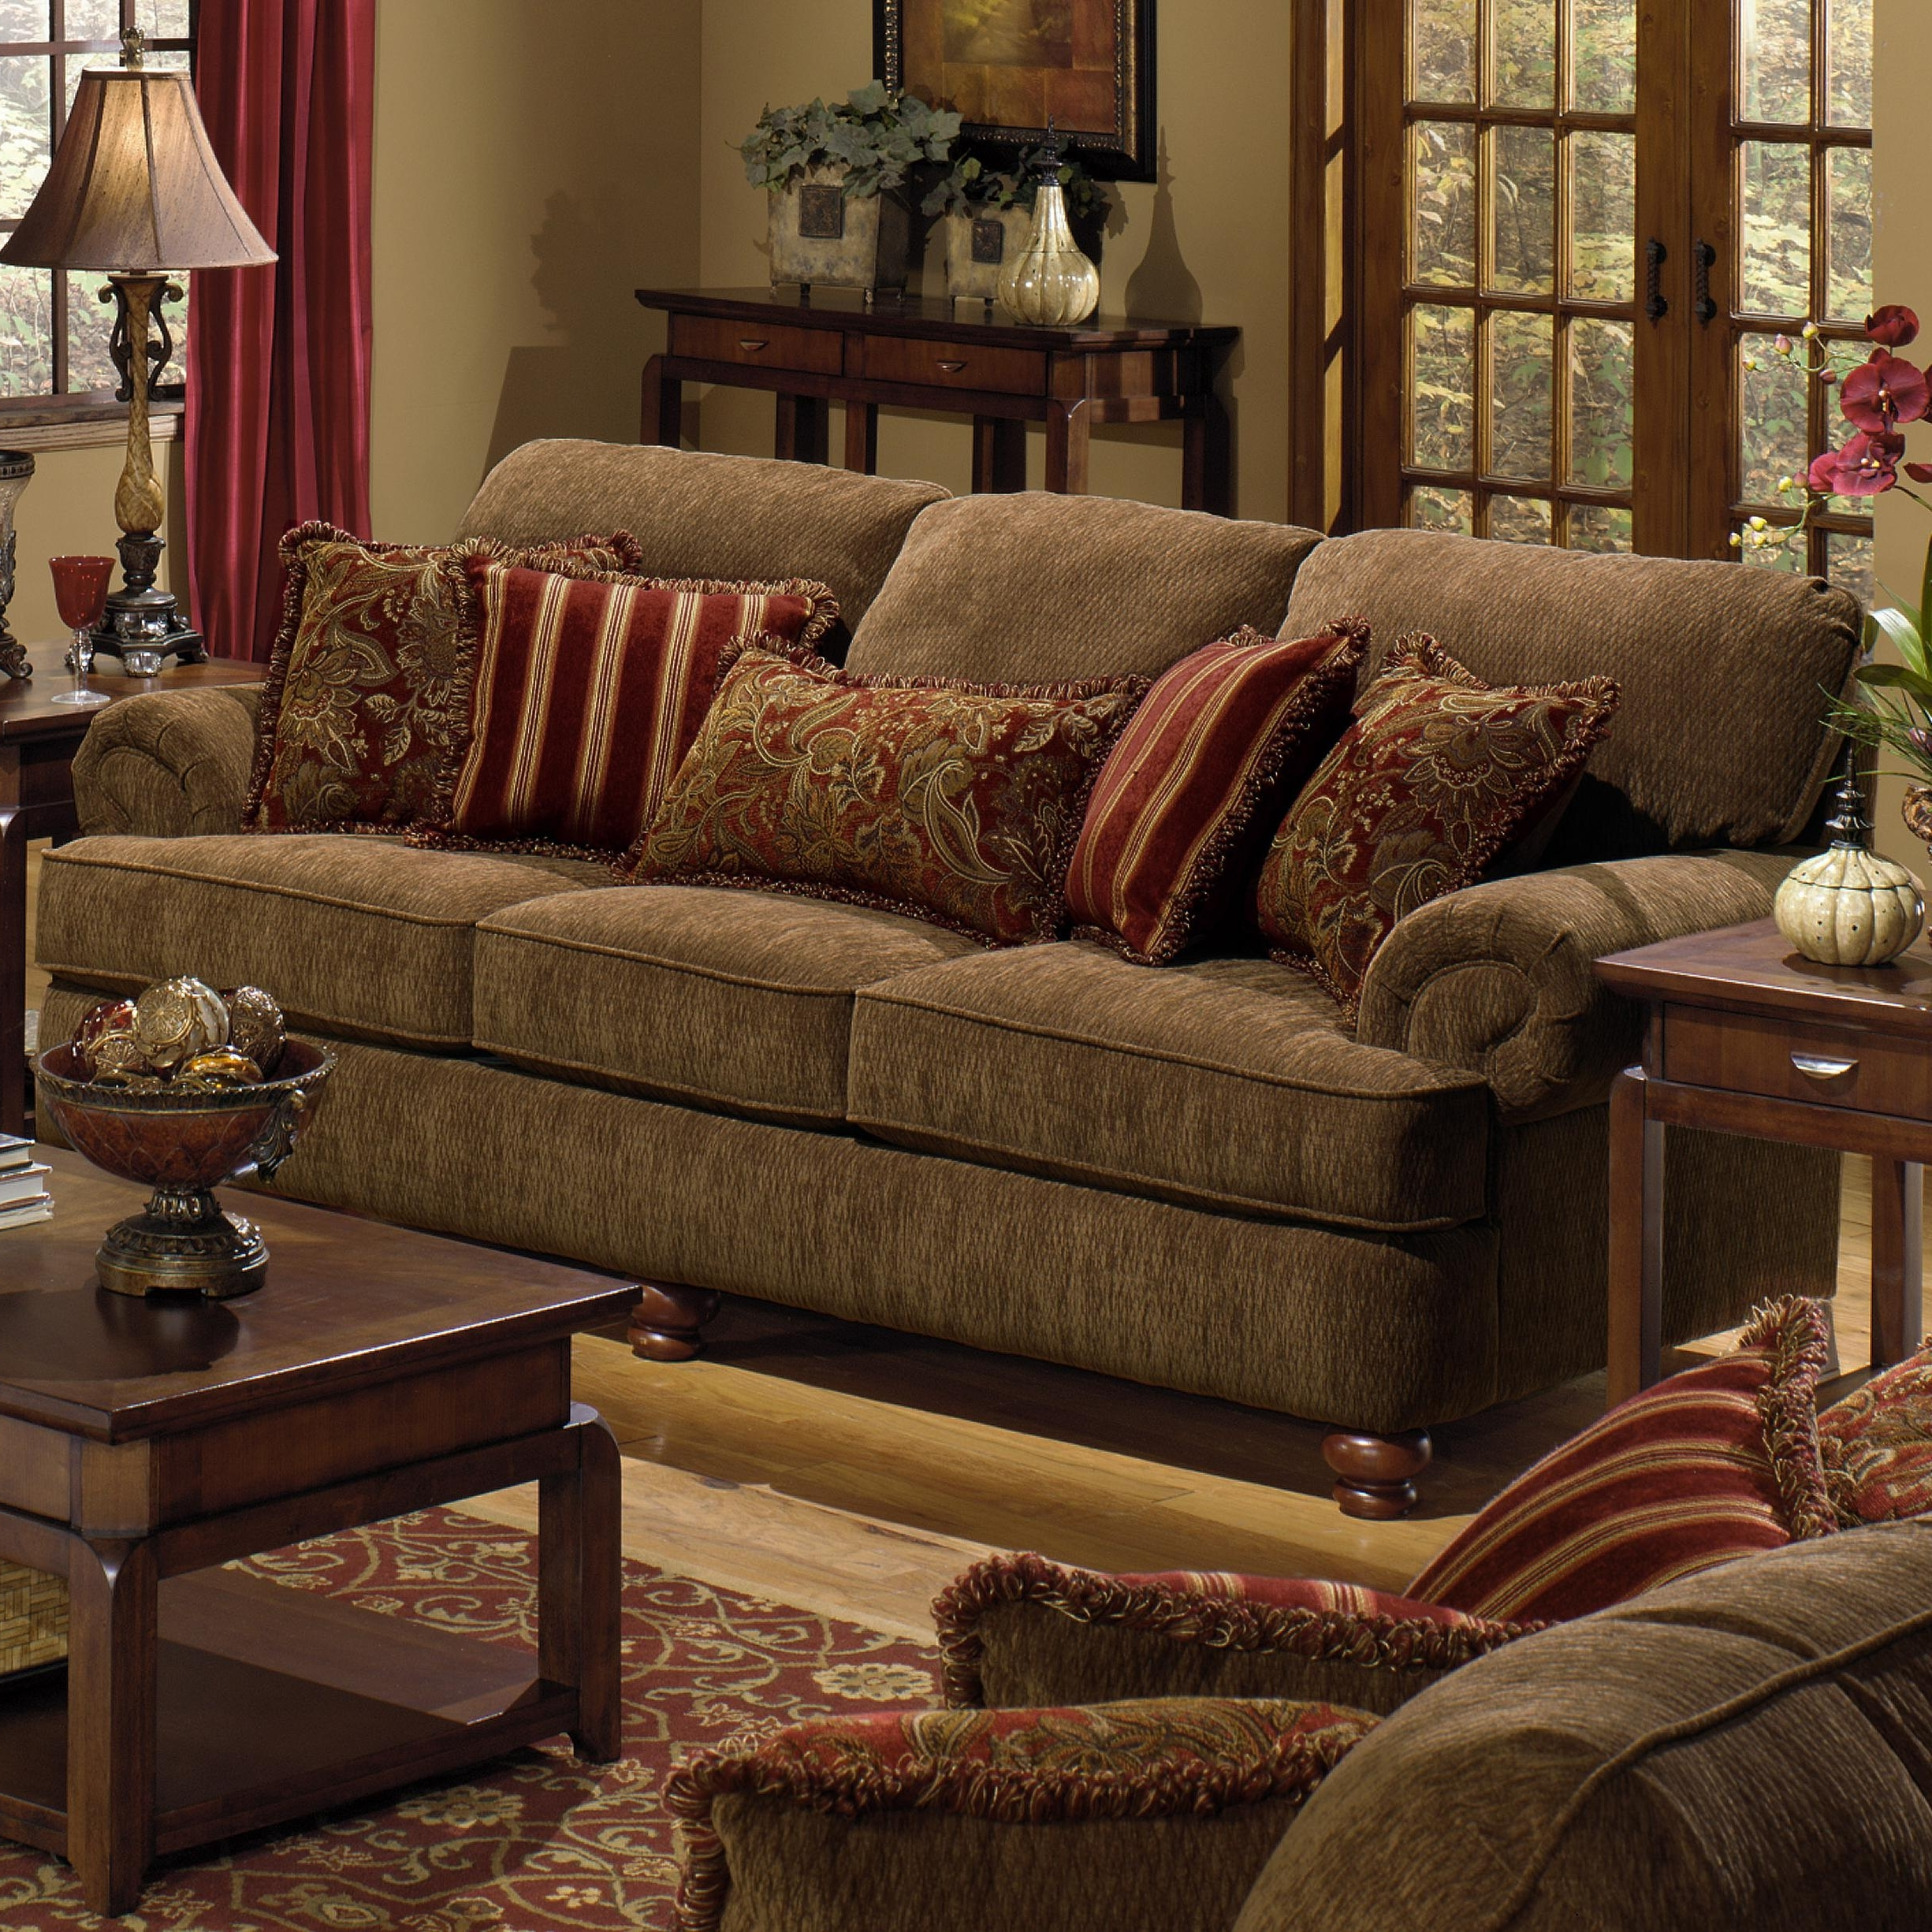 Well Known Living Room : Decorative Pillows For Sofa Cheap Decorative Regarding Sofas With Oversized Pillows (View 4 of 15)